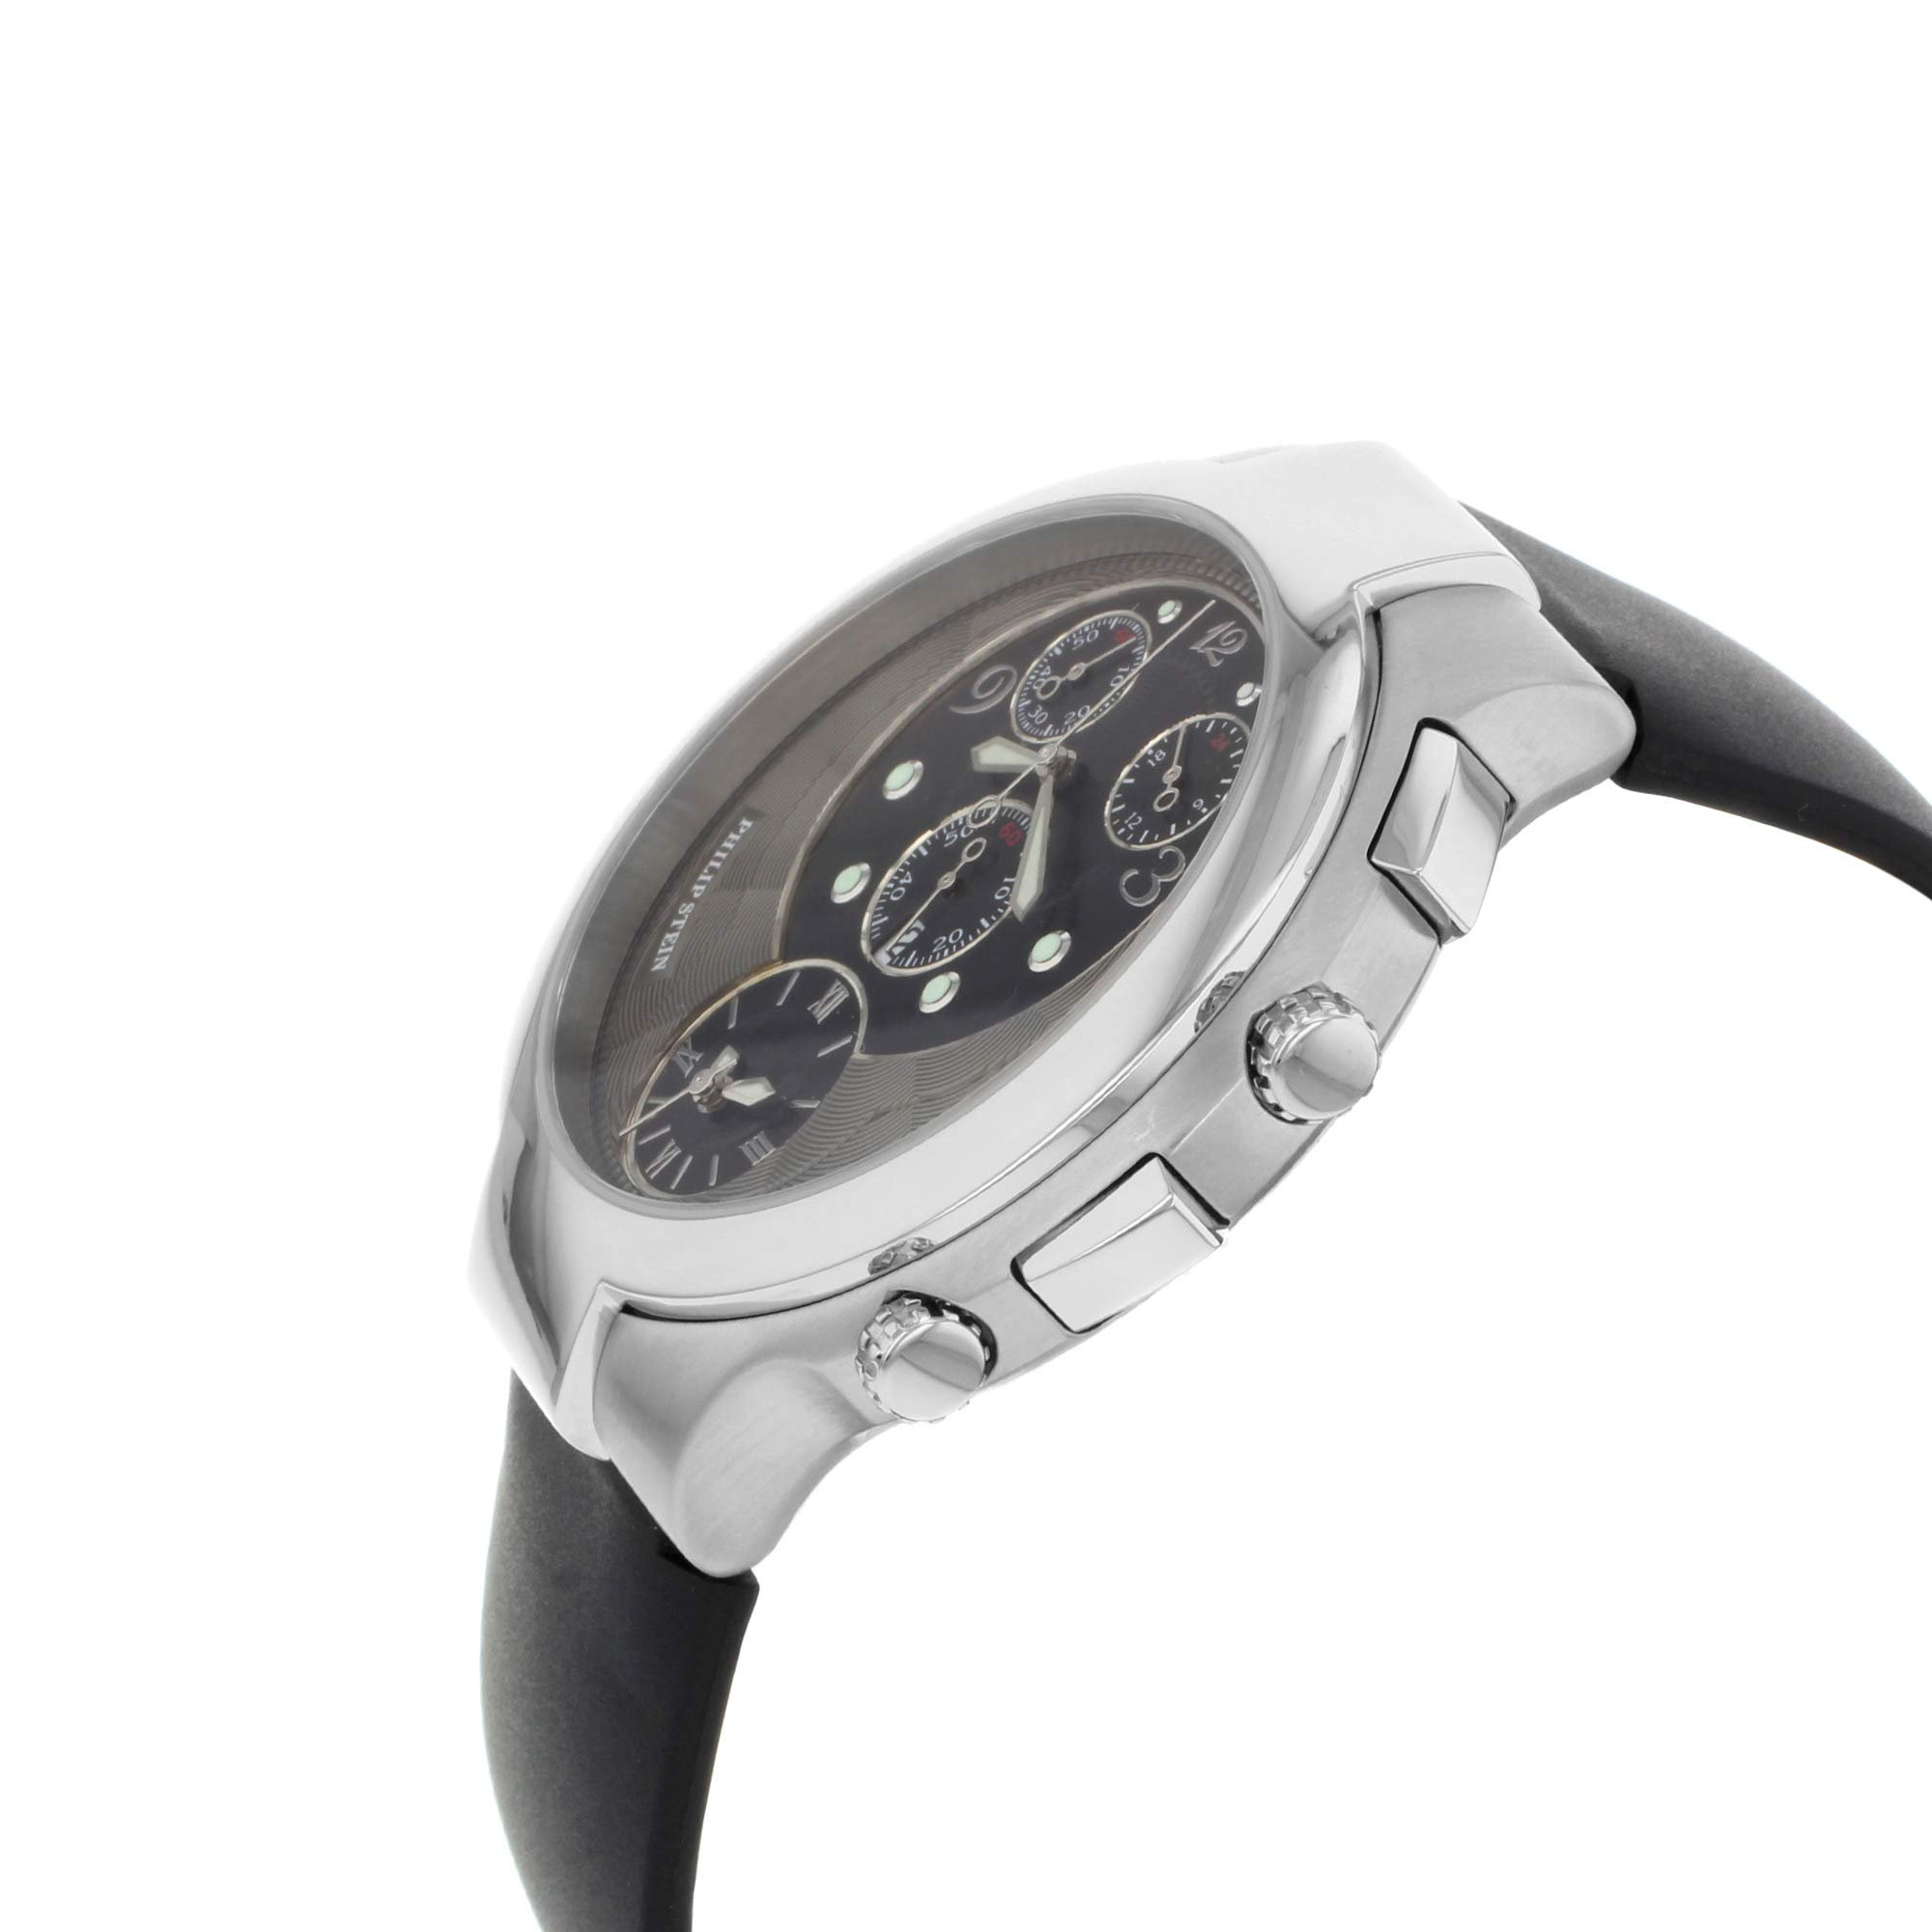 Philip Stein Chrono Analog-Quartz Male Watch 9-CRB3-CB (Certified Pre-Owned) by Philip Stein (Image #3)